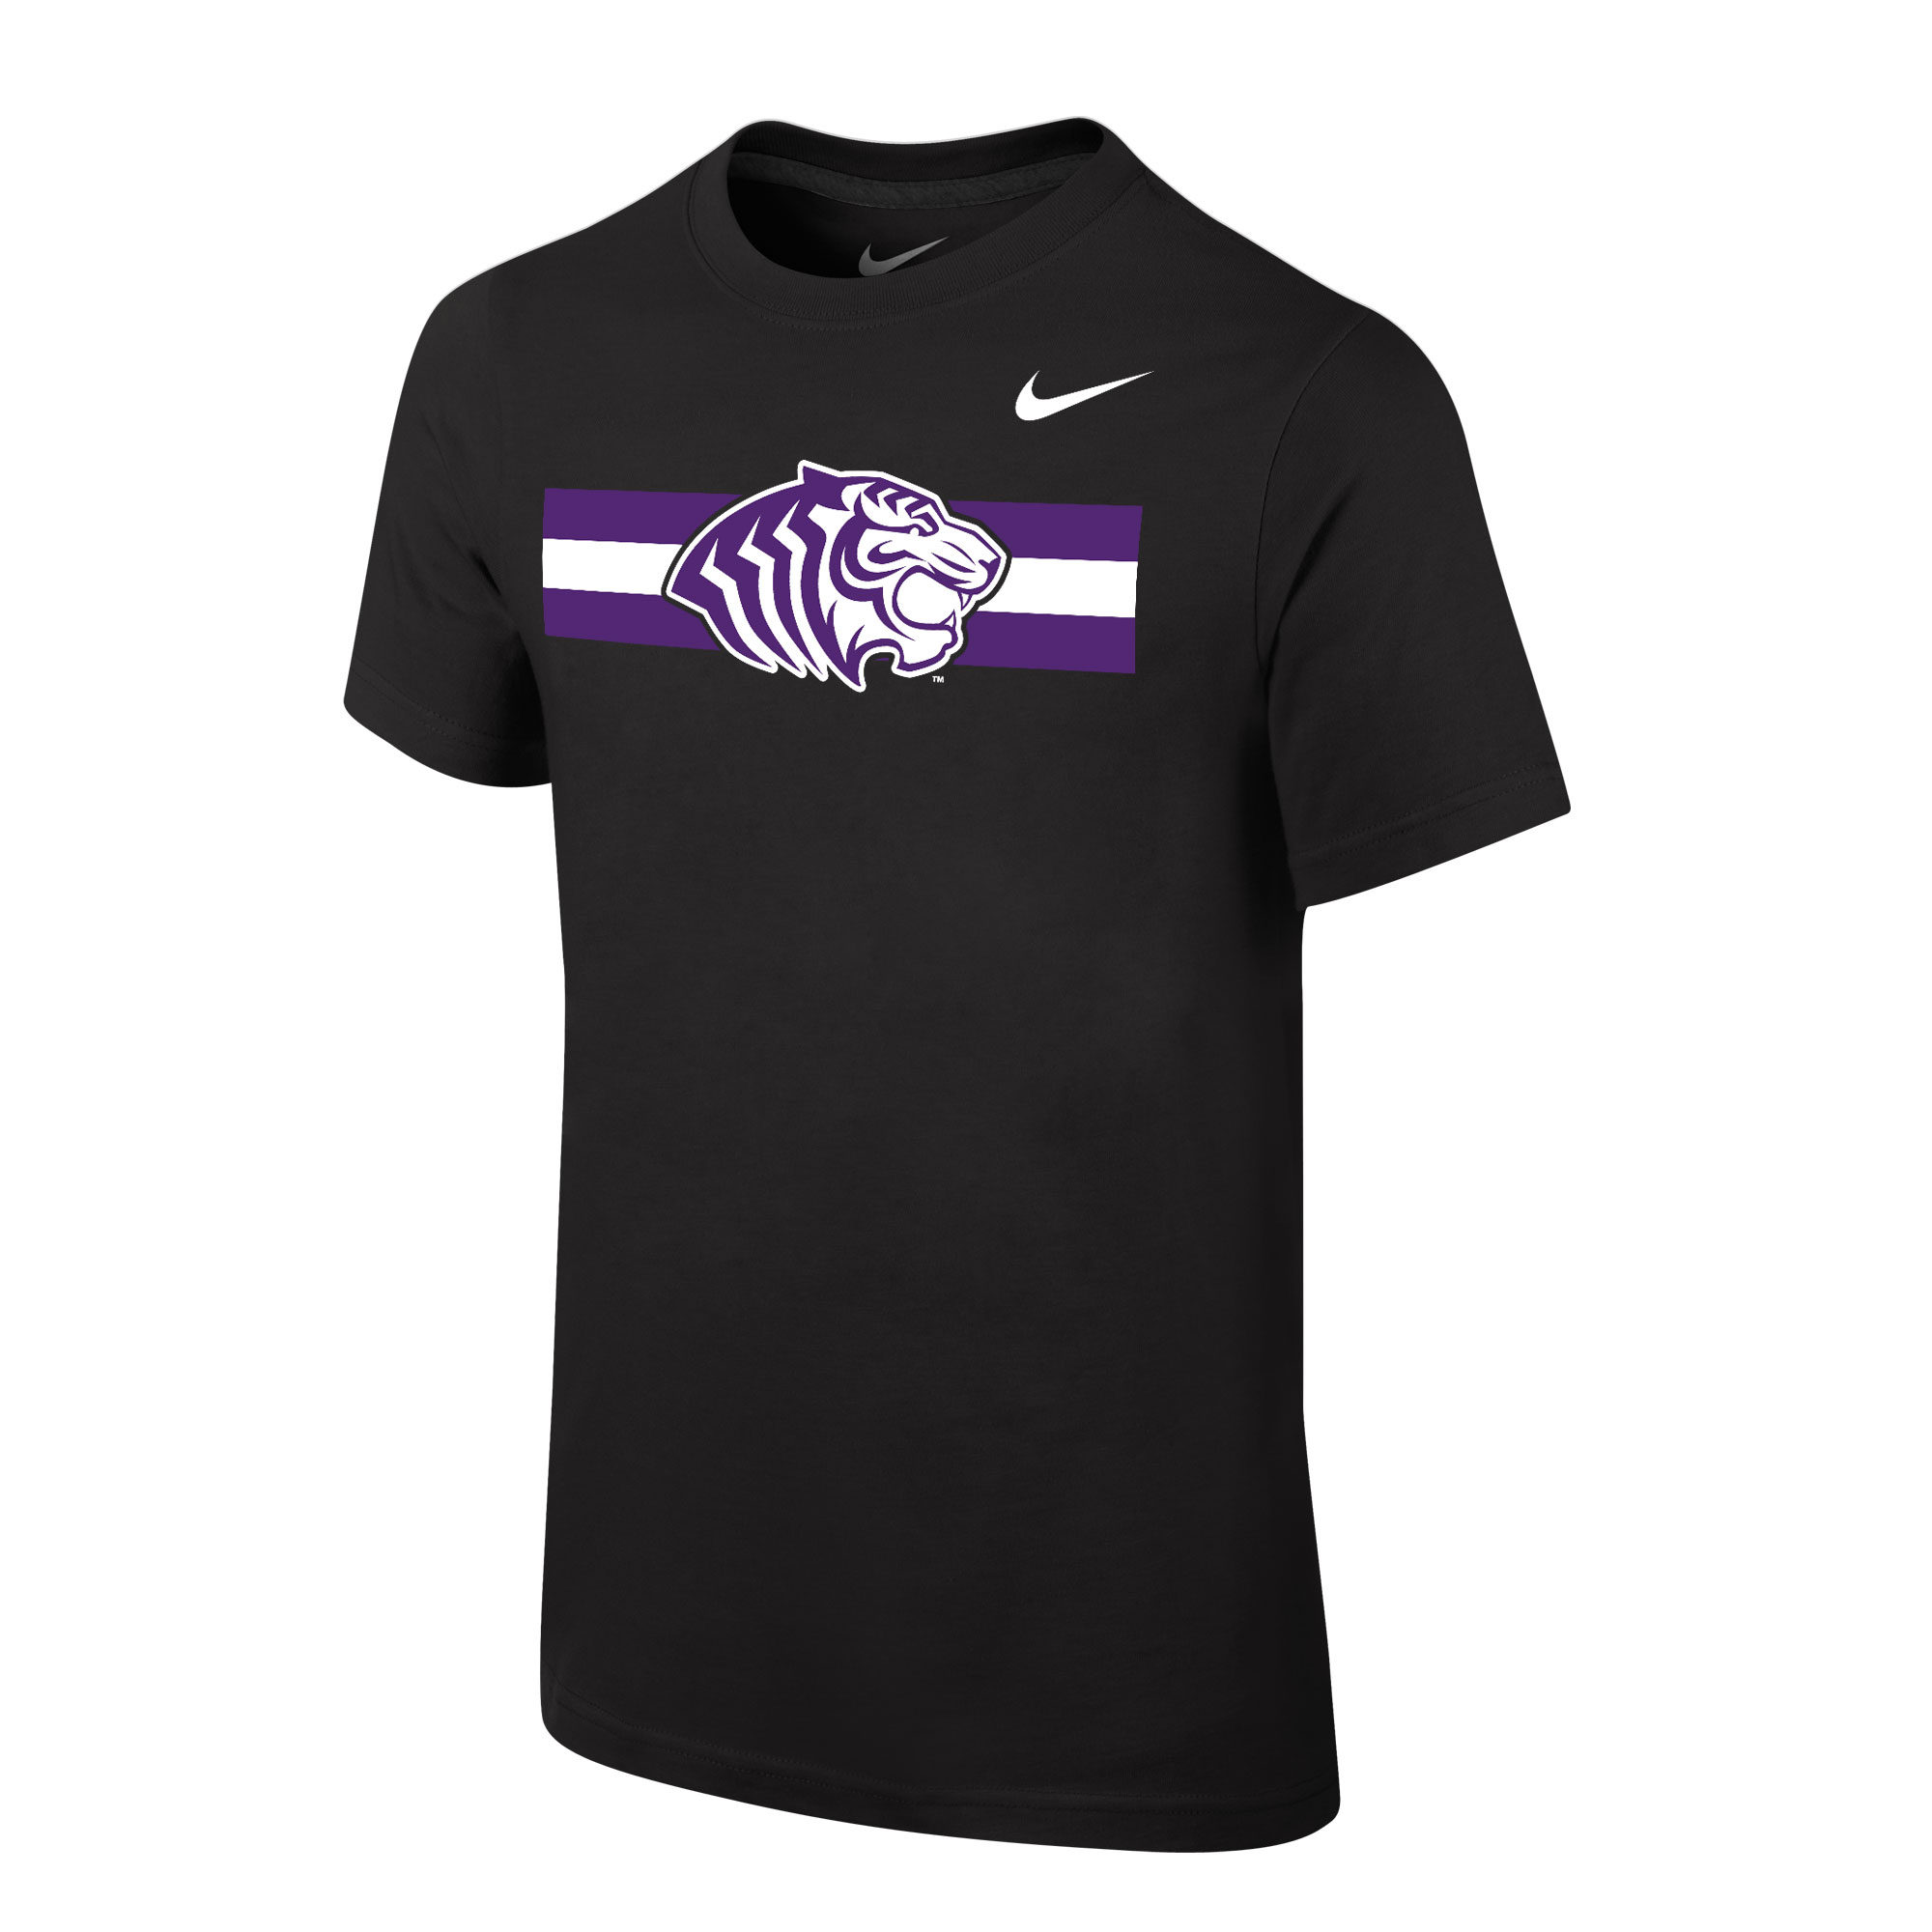 NIKE YOUTH CORE SS TEE